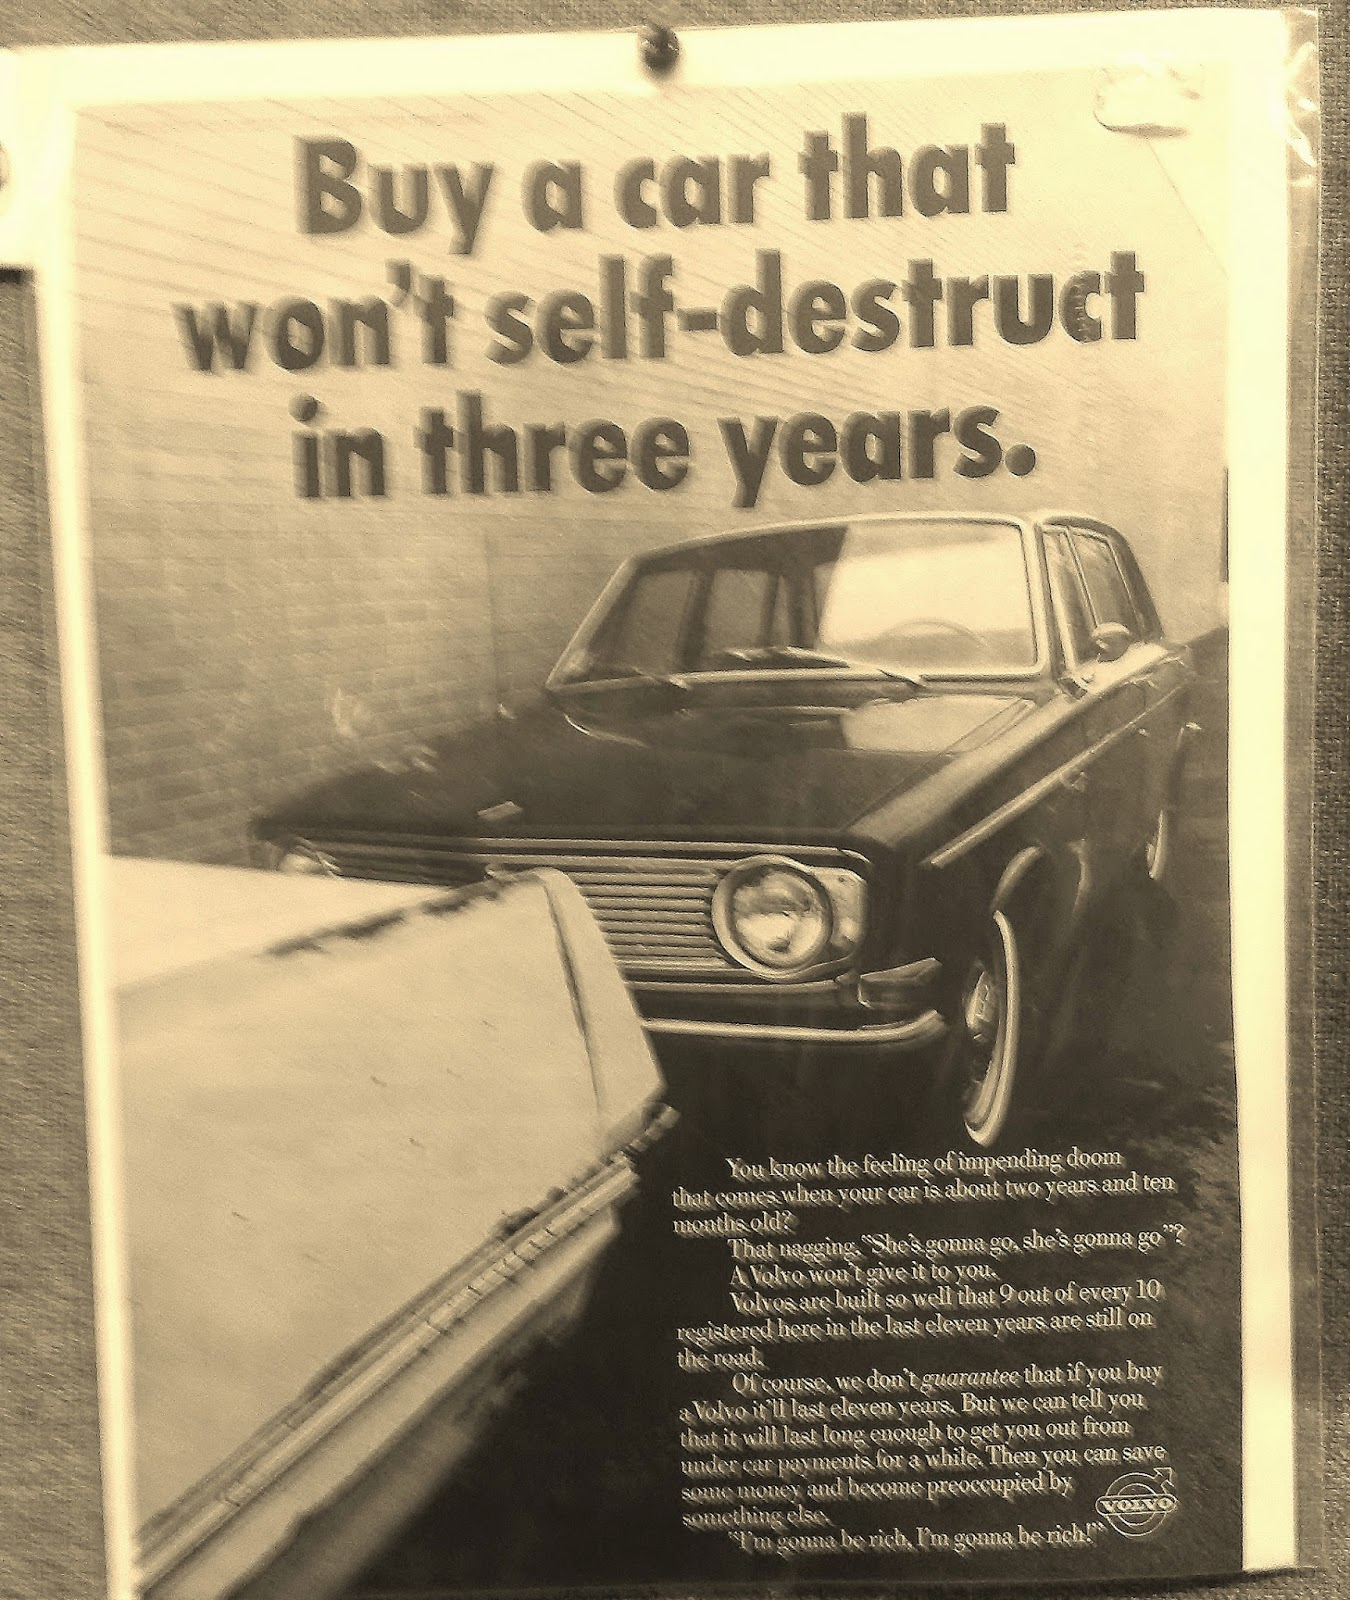 archives r manual diesel saab just volvo parts speed category breakers cheap arrived design